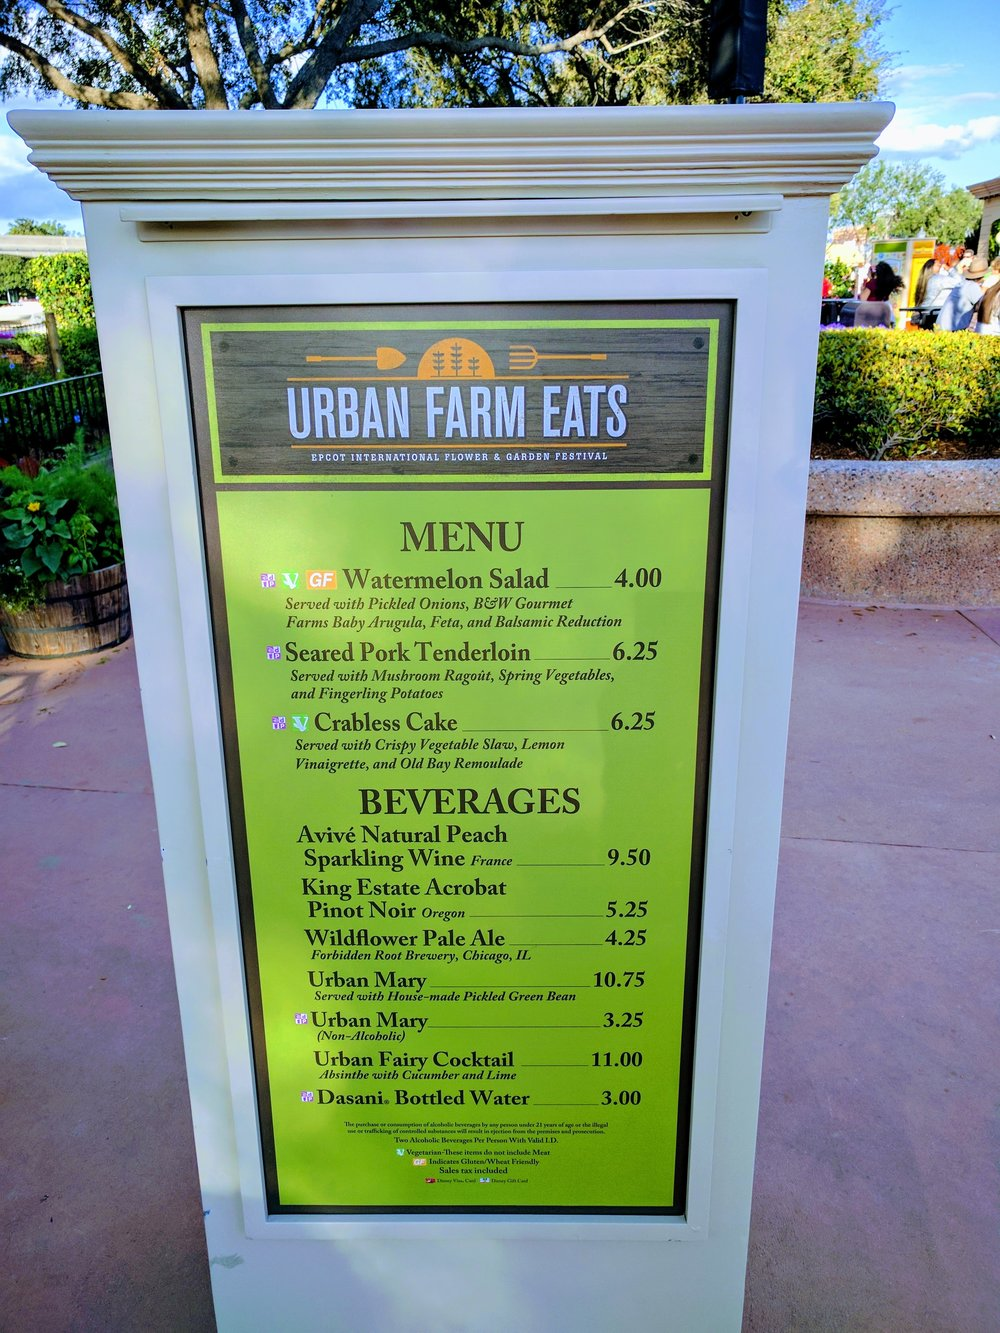 Location's menu and price list